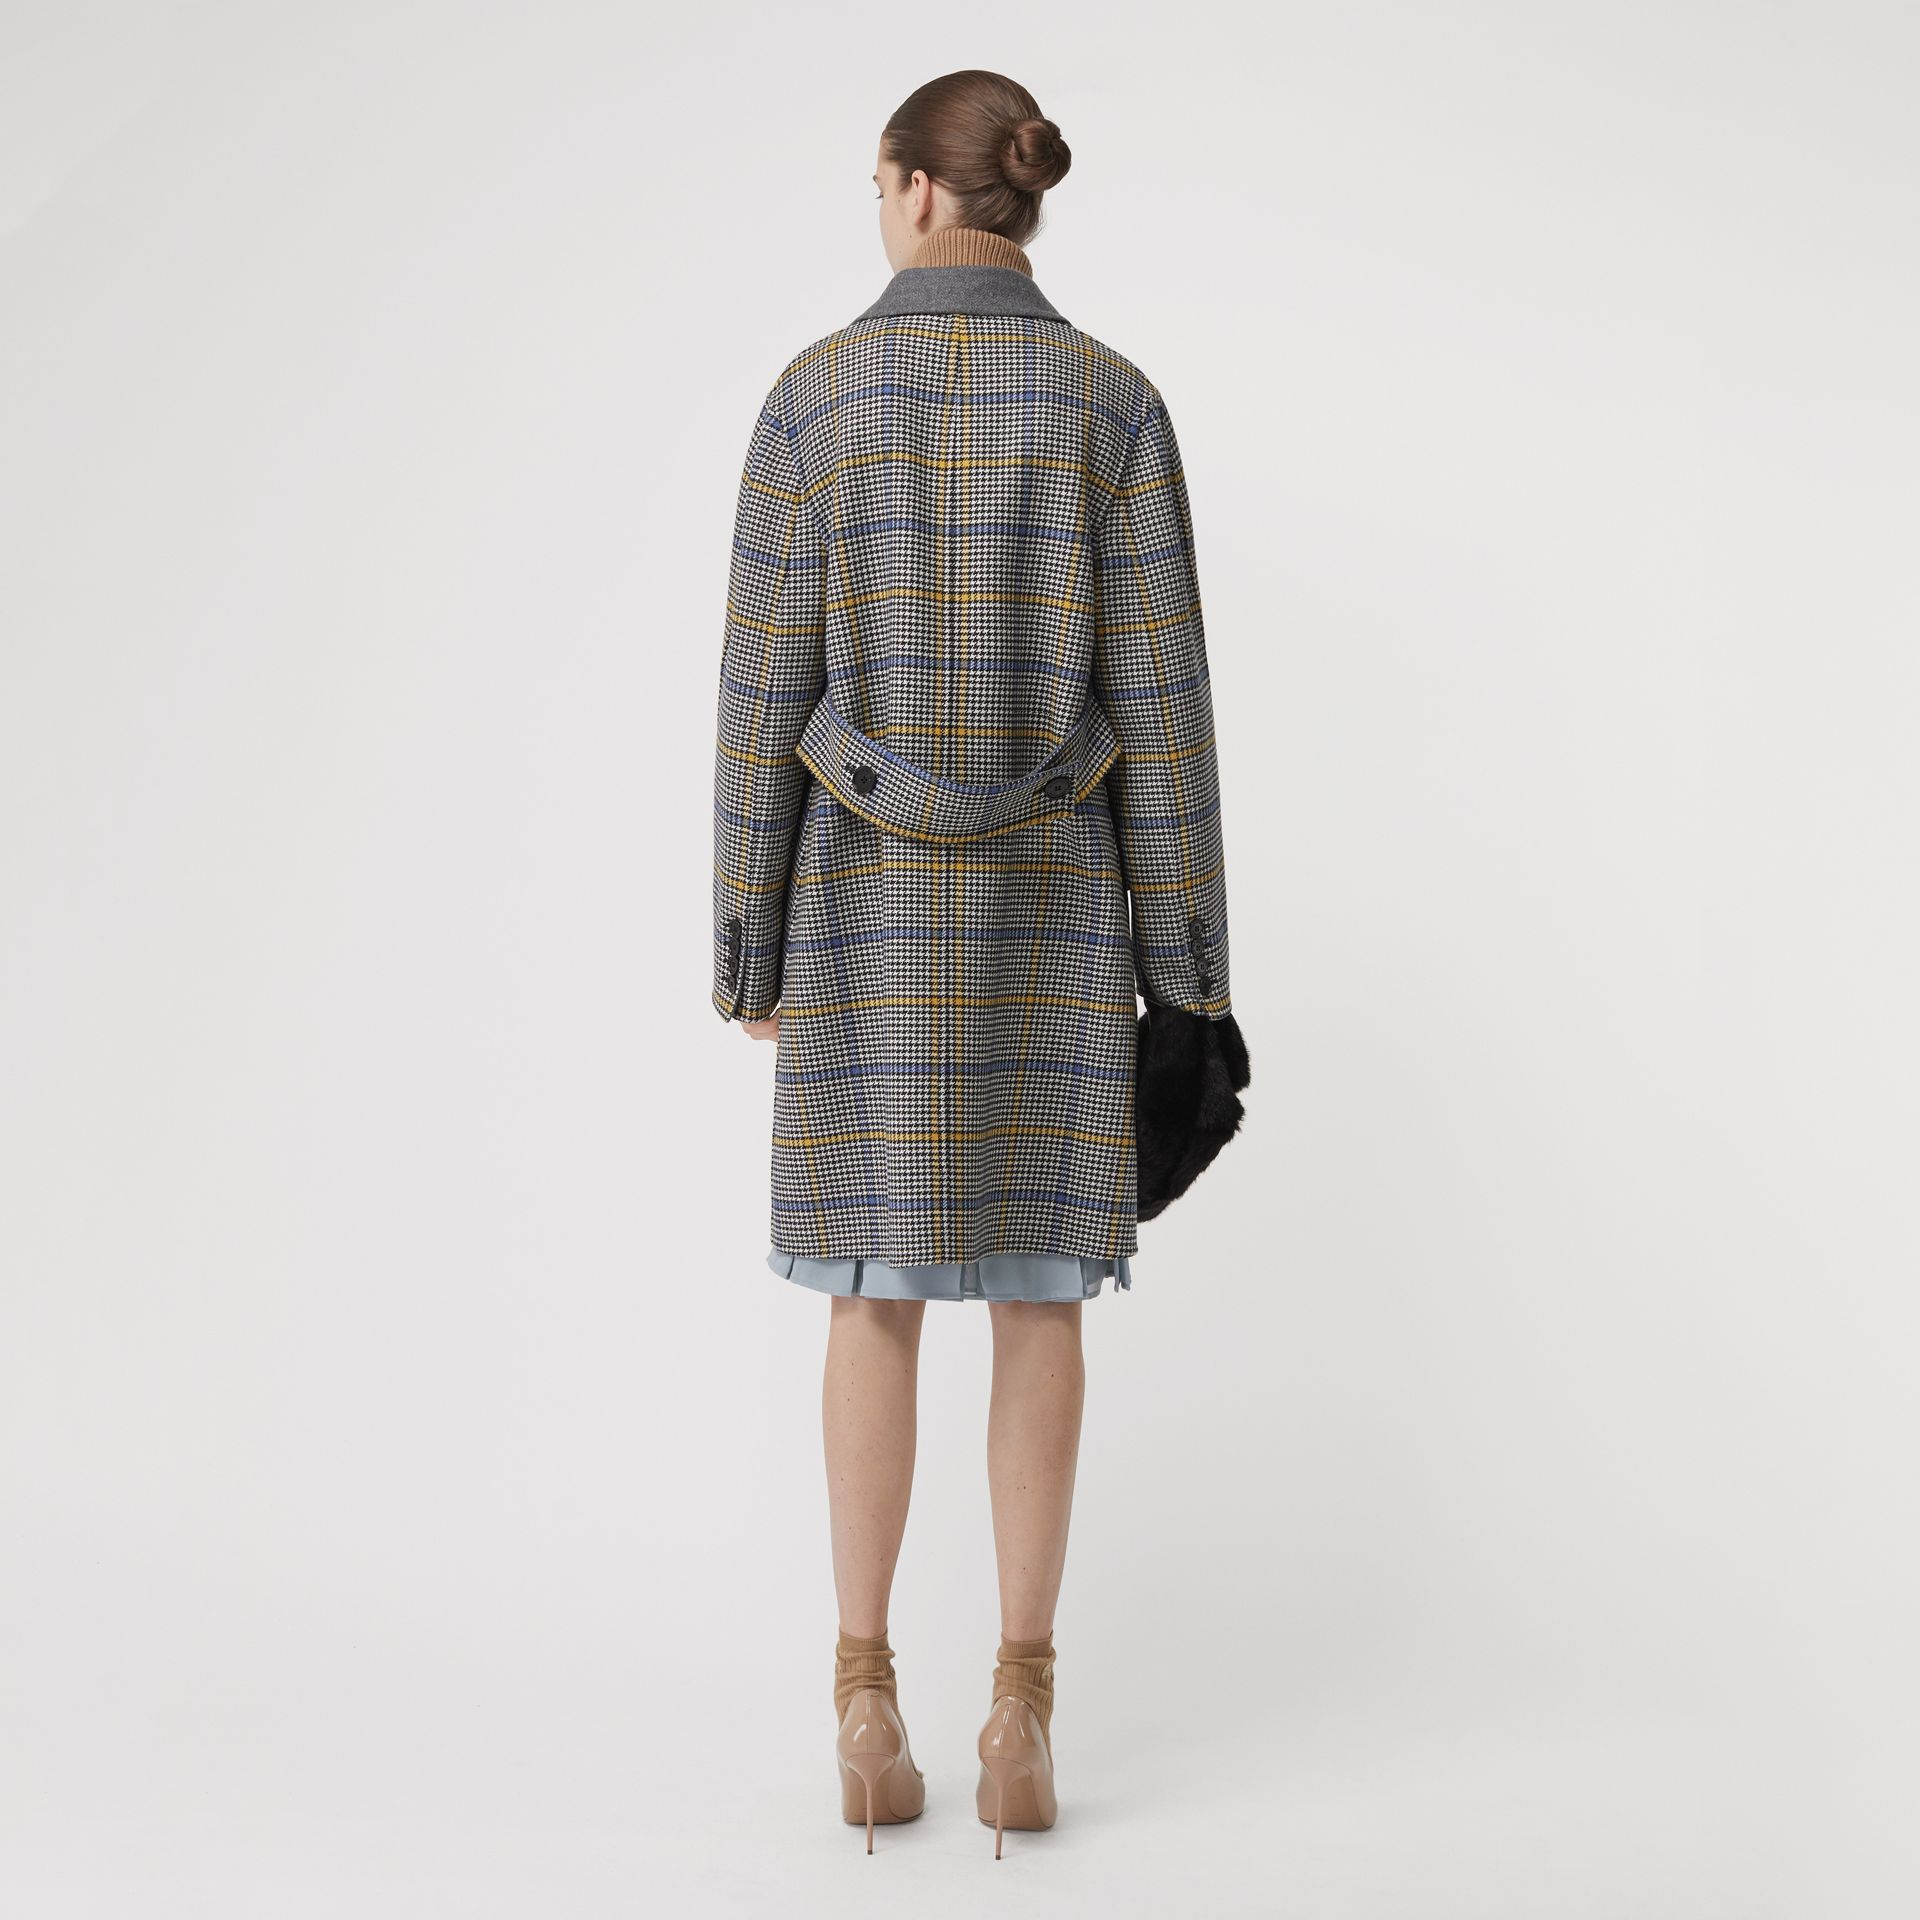 Manteau en laine et cachemire double face à motif check (Parchemin) - Femme | Burberry - photo de la galerie 2